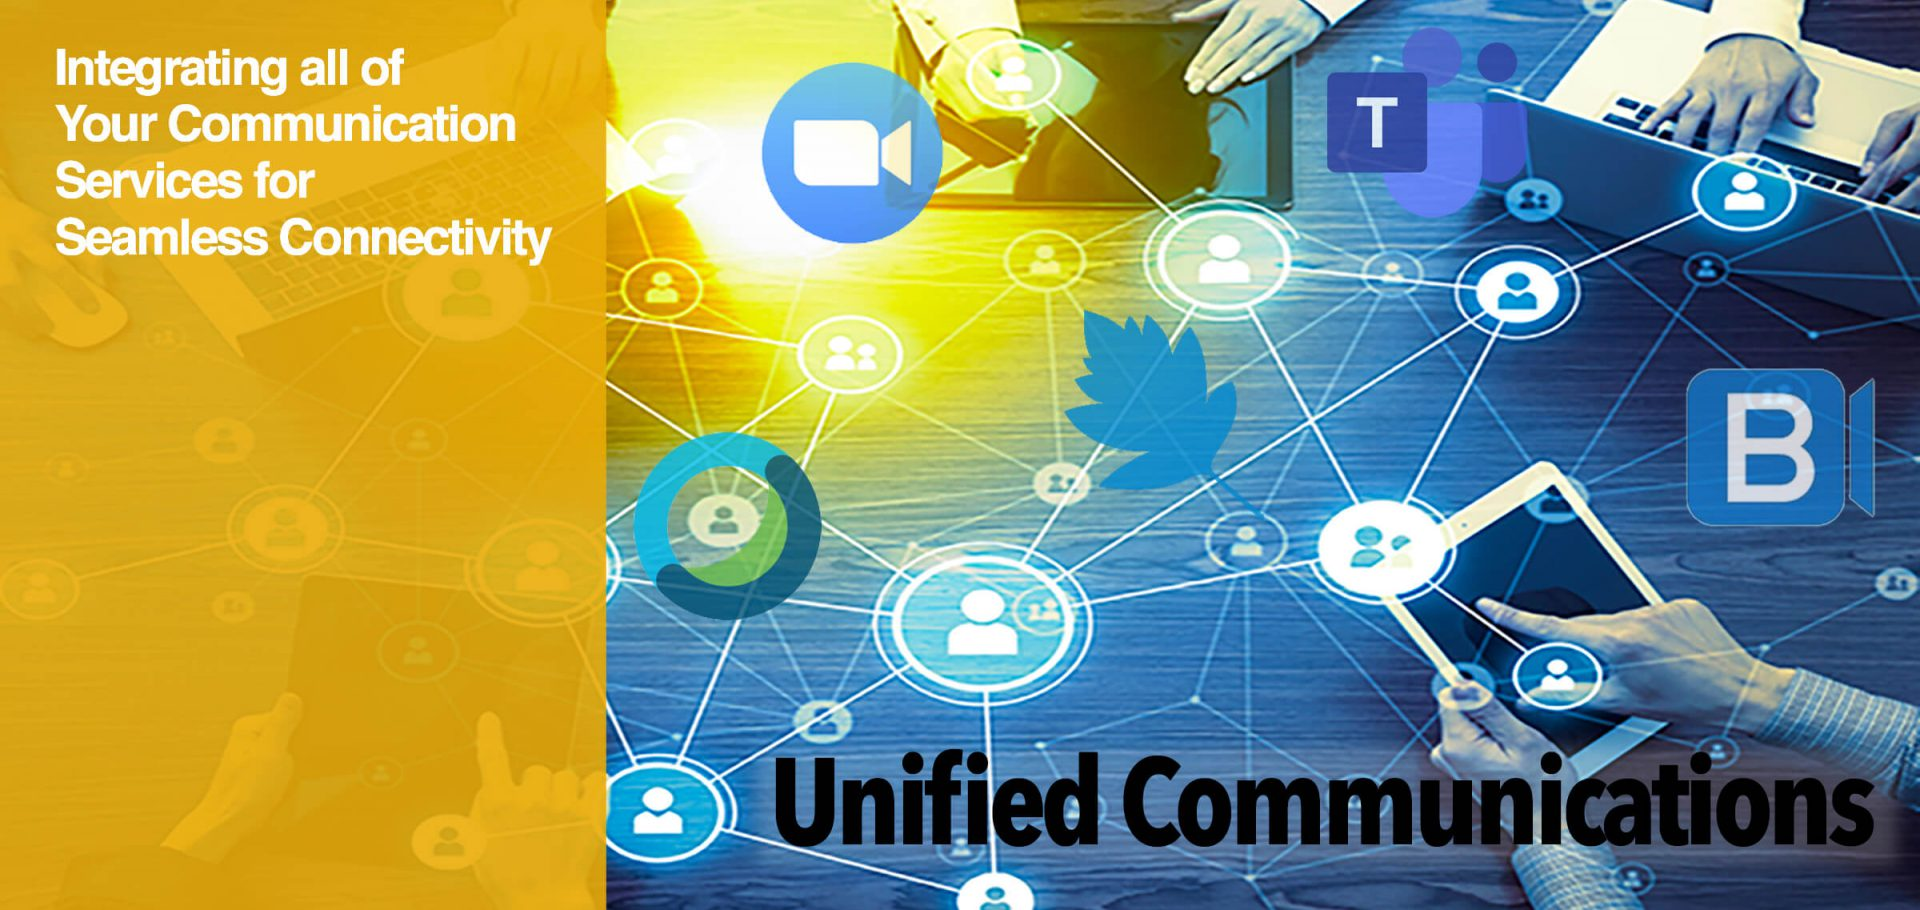 9 -Unified Communications